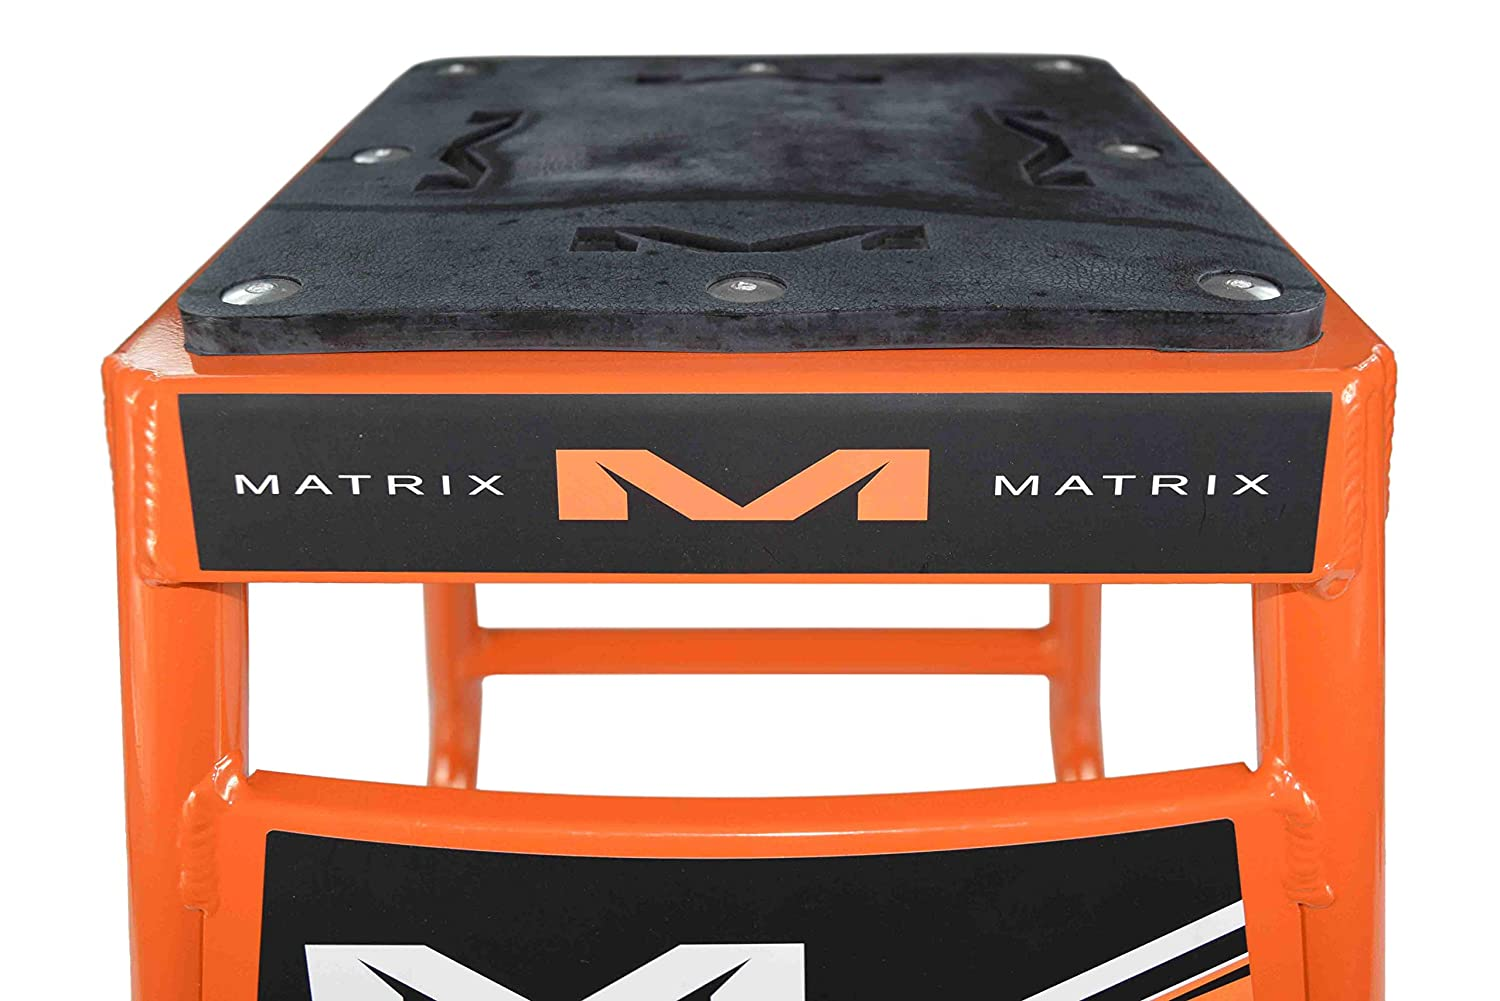 Matrix Concepts Motocross Mini A2 Aluminum Dirt Bike MX Stand w Limited Edition 25 Piece Sticker Kit White